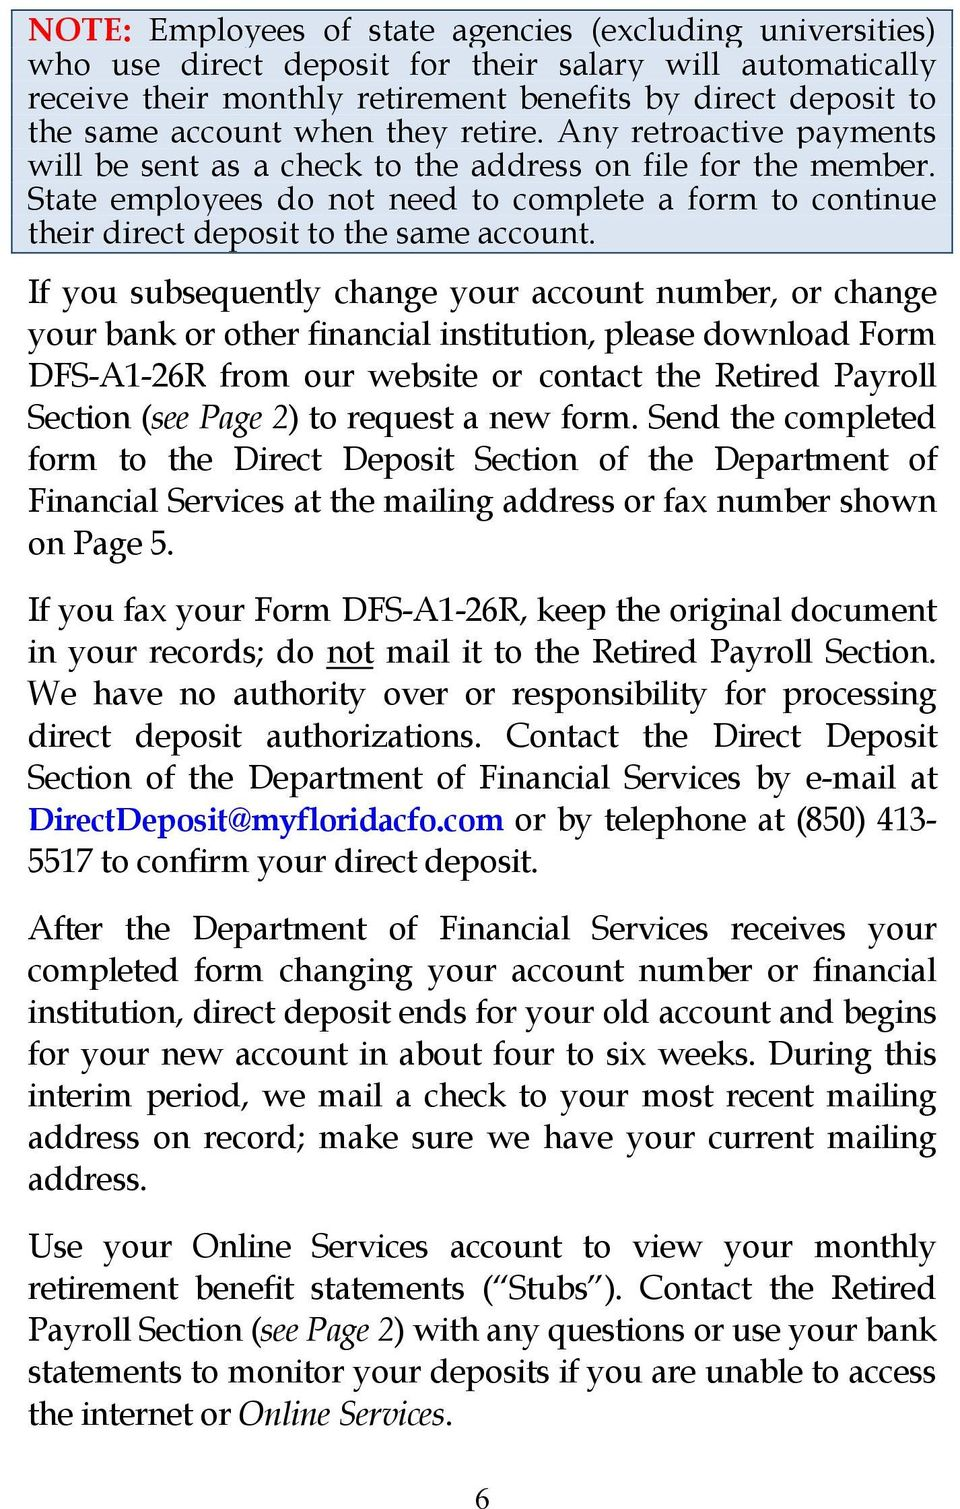 State employees do not need to complete a form to continue their direct deposit to the same account.